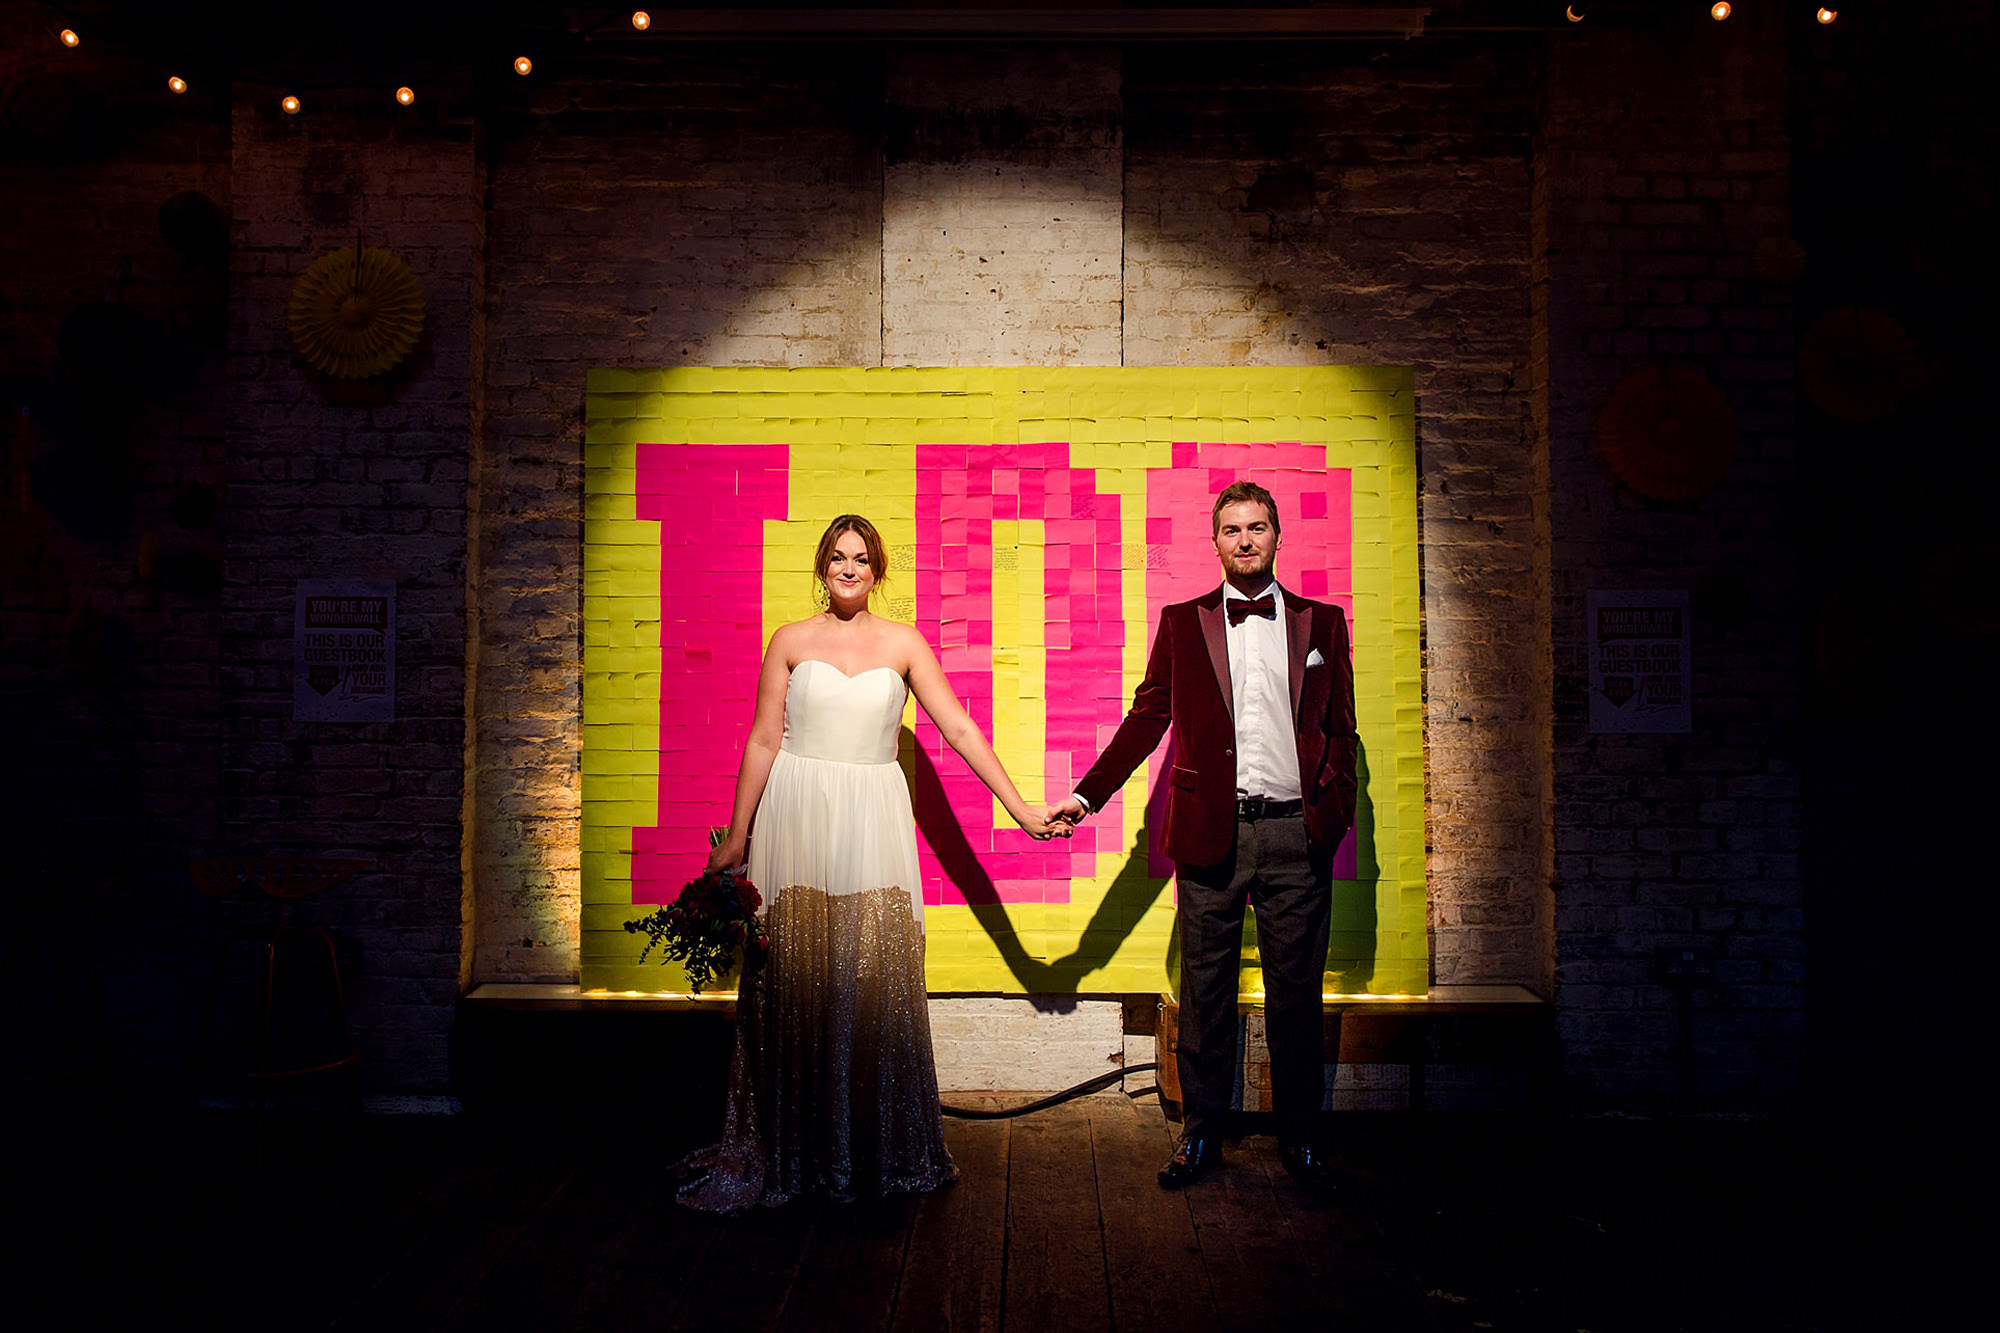 Fun London Wedding portrait of bride and groom in front of giant post it note sign